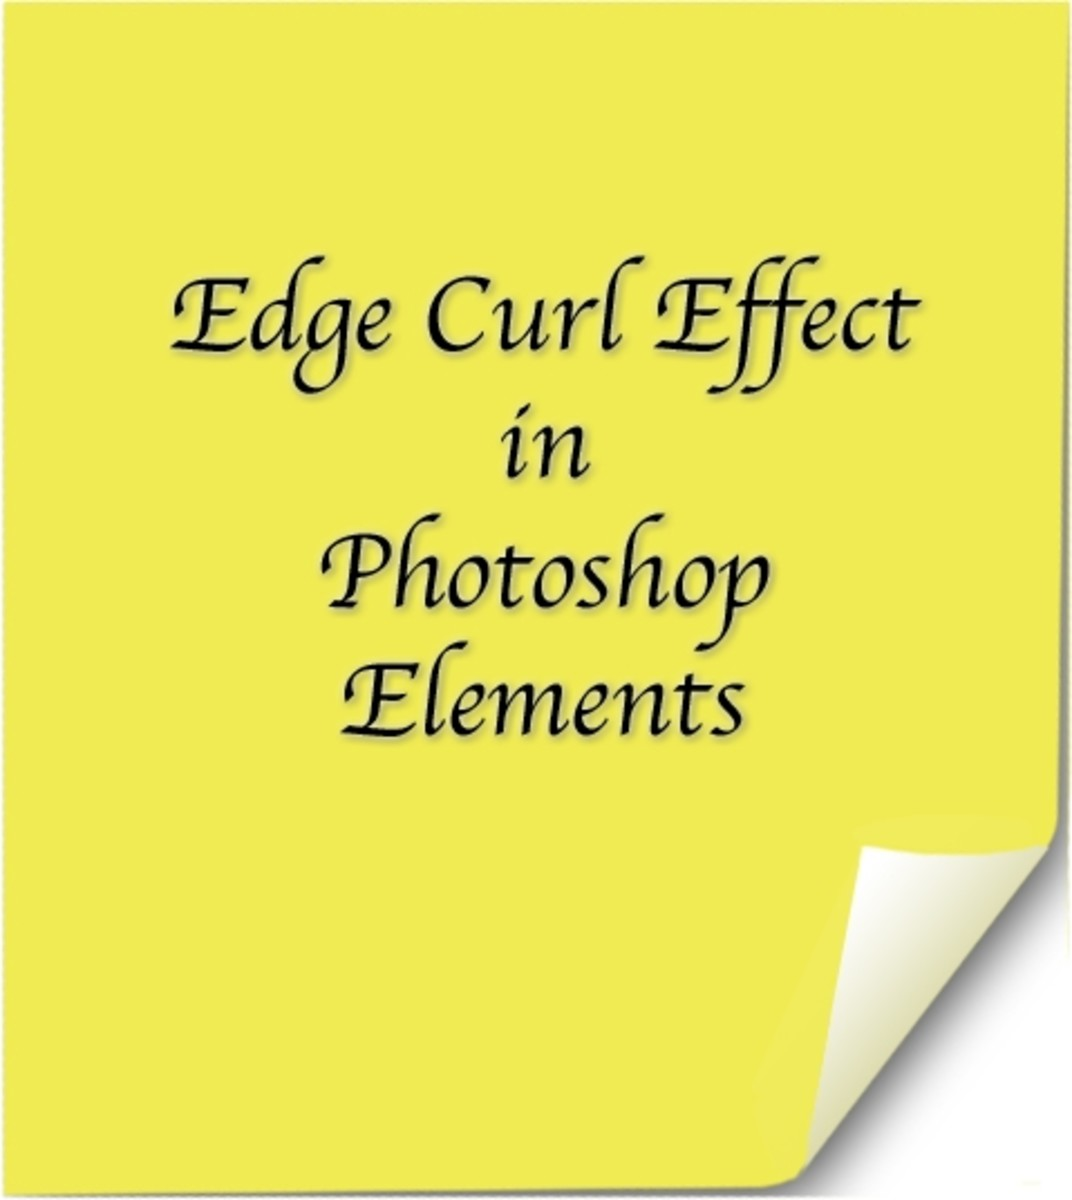 Give your sticky notes a 3d effect with a page curl, or edge curl effect.